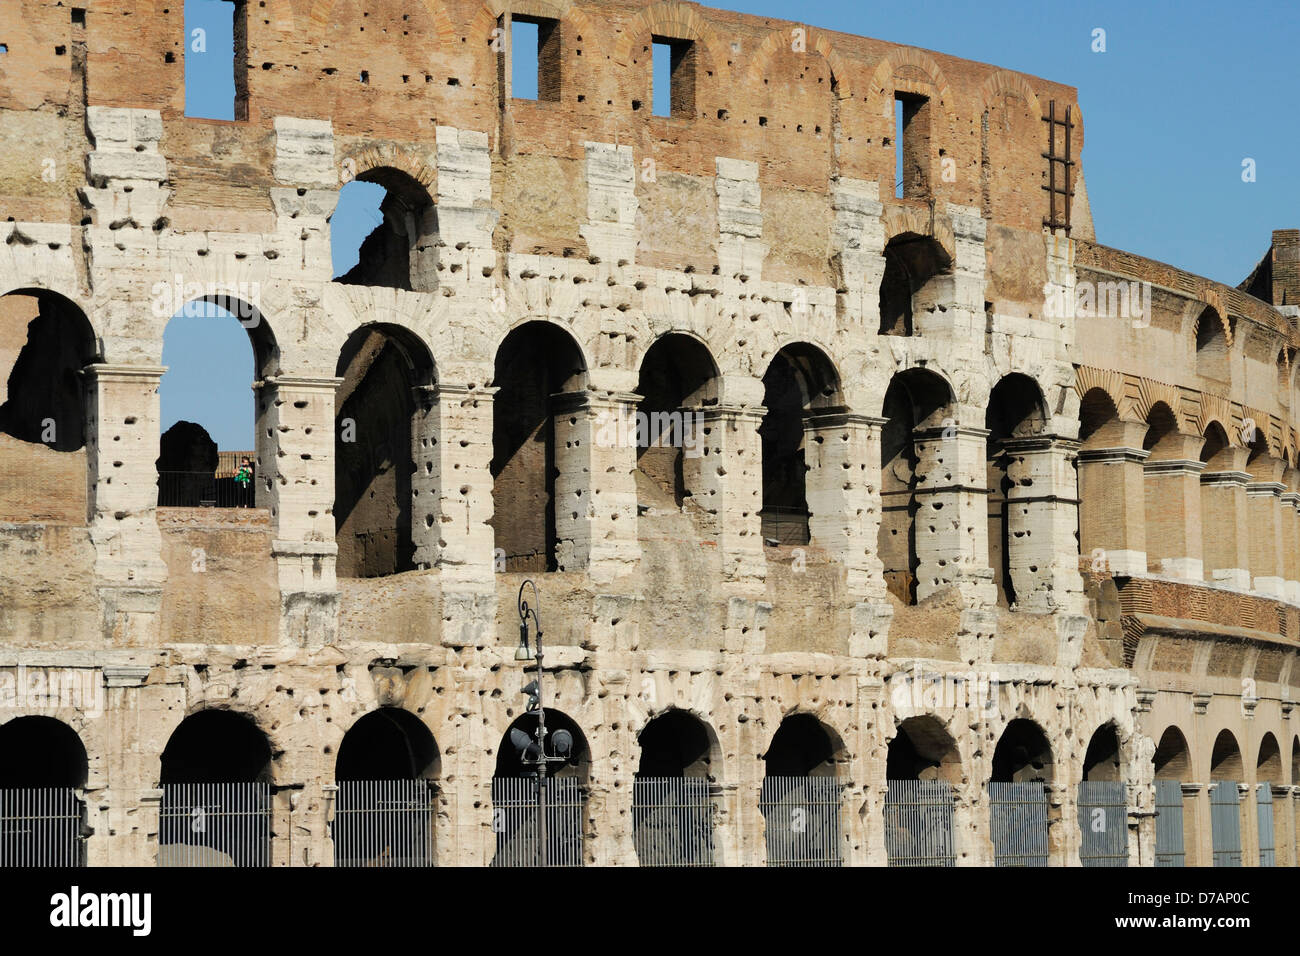 close up of the colosseum, symbol of the roman empire, rome italy Stock Photo